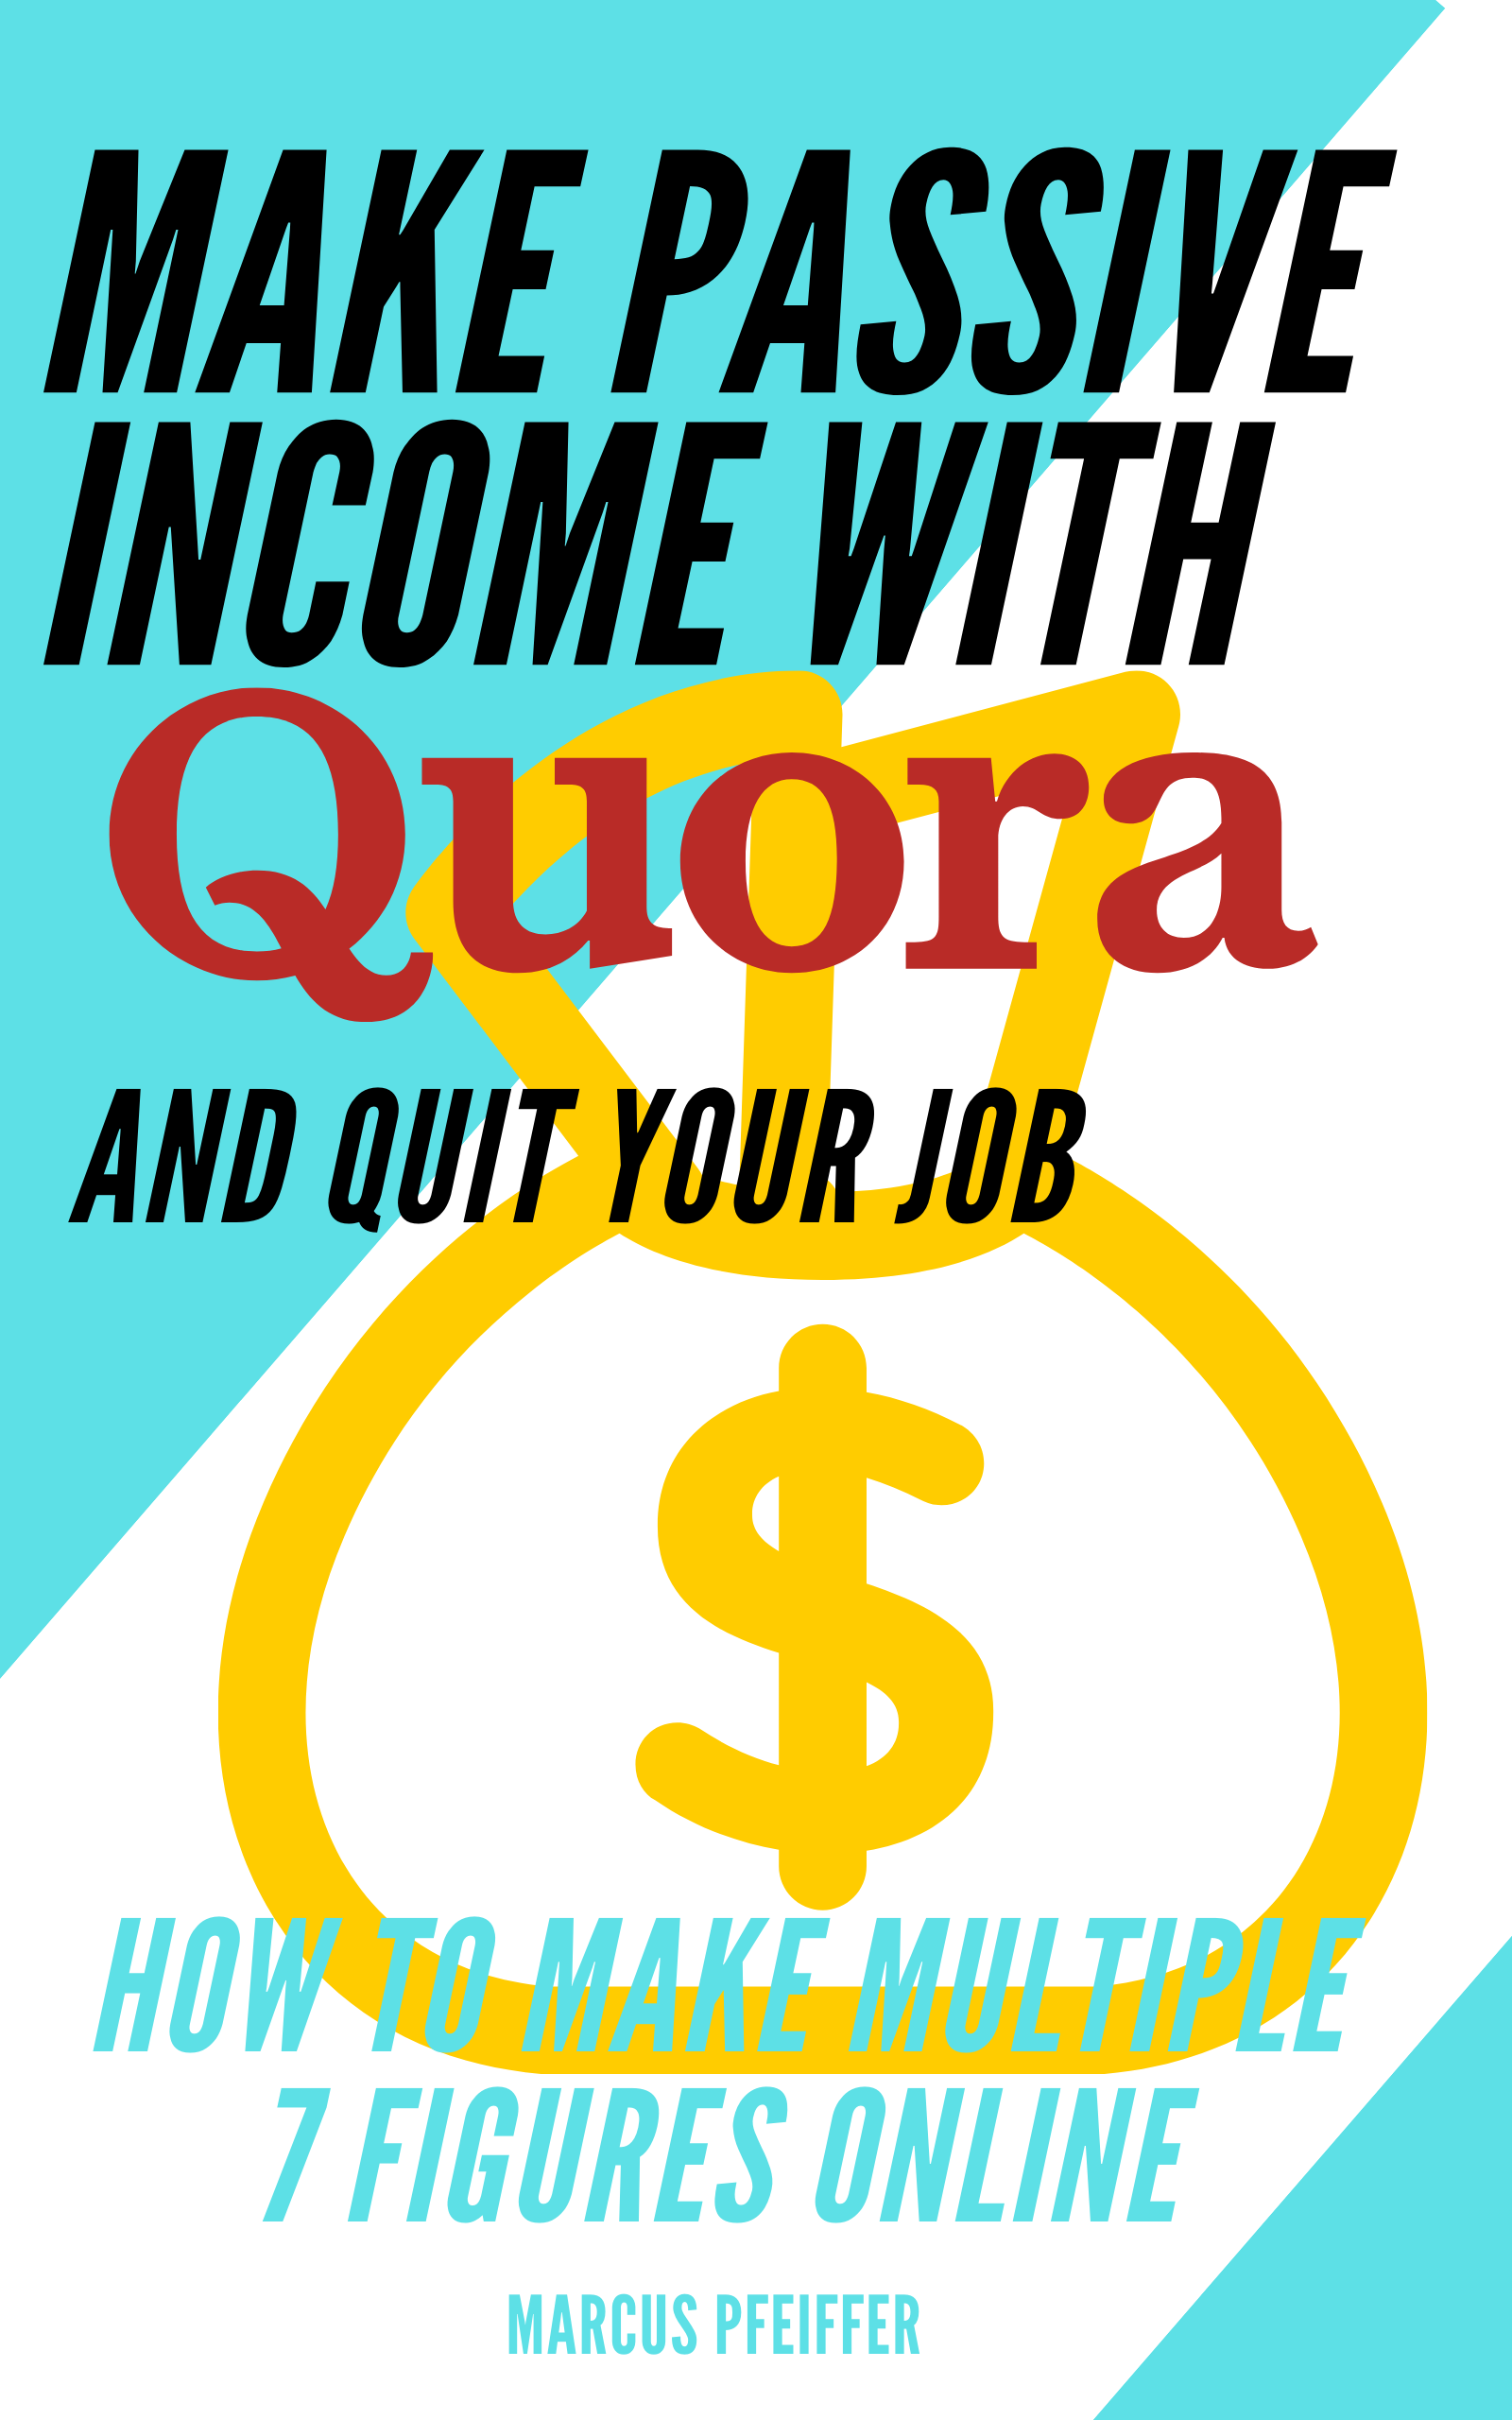 Make passive income with quora and quit your job